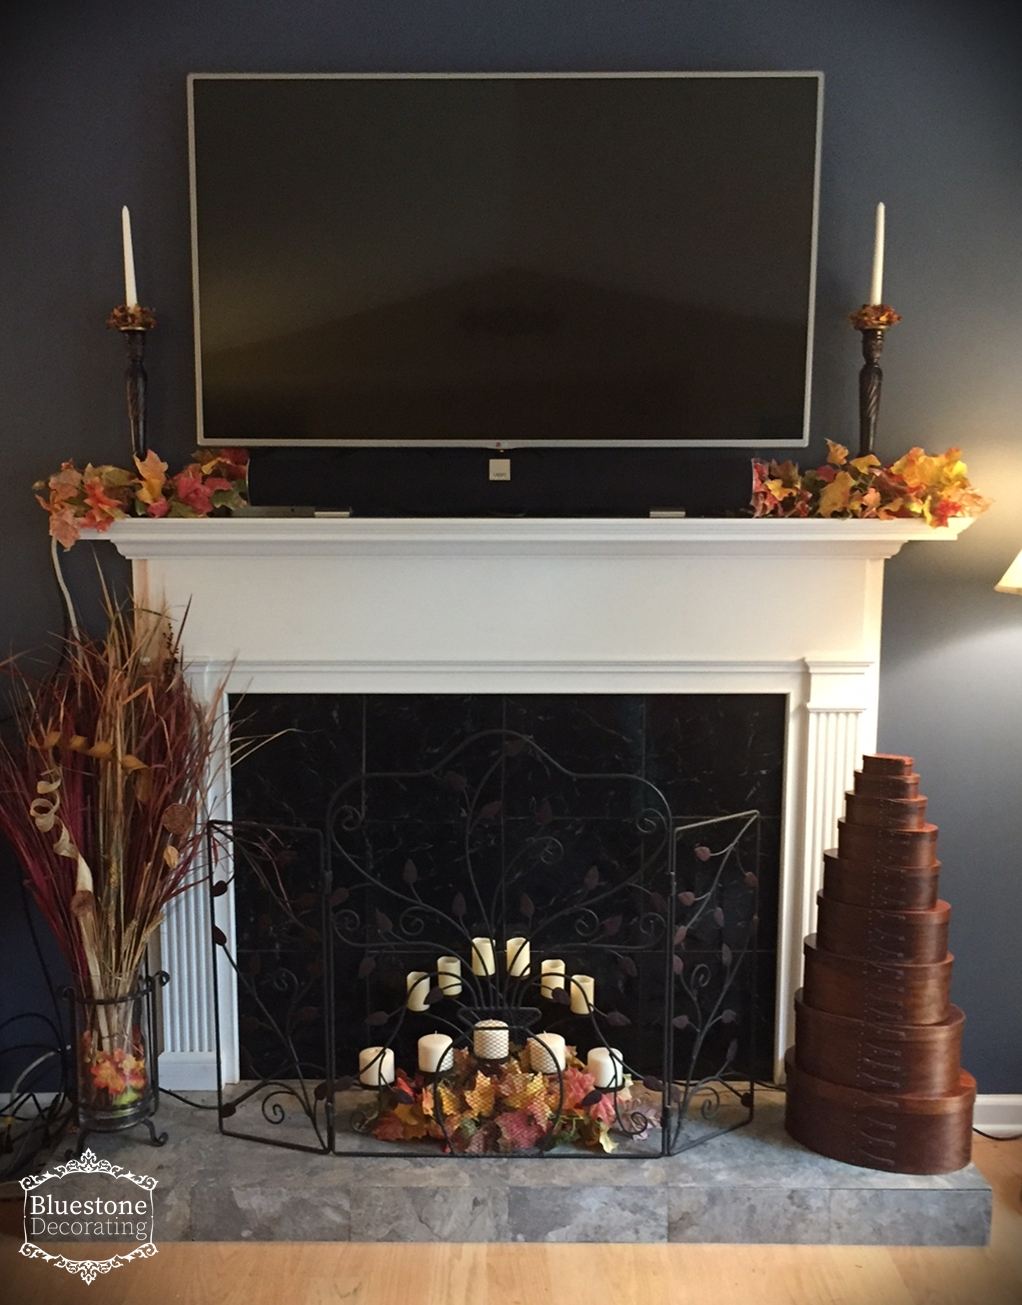 Fall Decorating in the Living Room & fall-decorating-fireplace-candles-leaf-garland-home-for-the-holidays ...